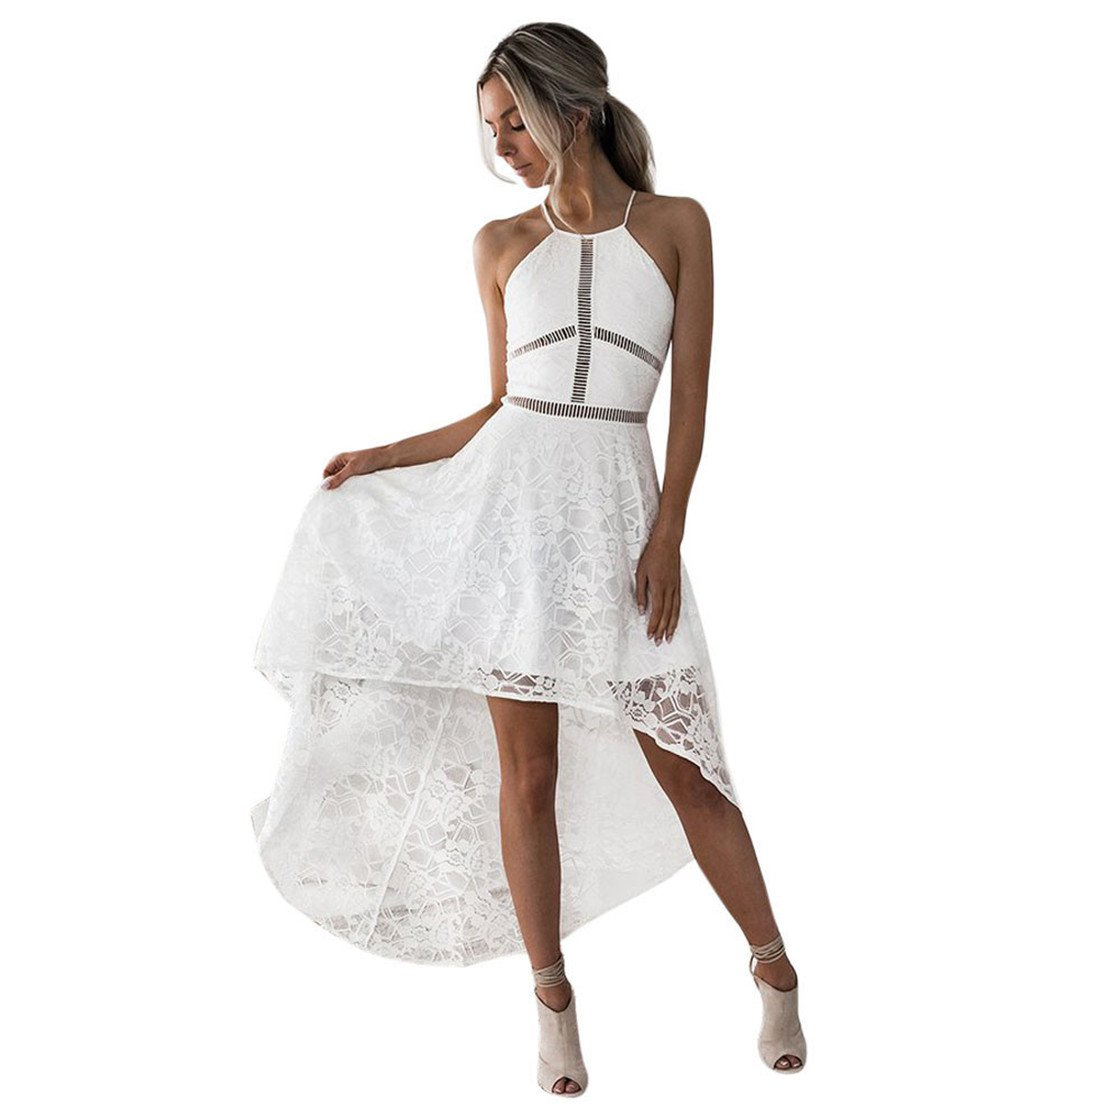 Mose Summer Dresses for Women, Ladies Harness Lace Irregular Dress Sleeveless Formal Prom Party Bridesmaid Wedding Ball Gown Cocktail Elegant Tops (XL, White)